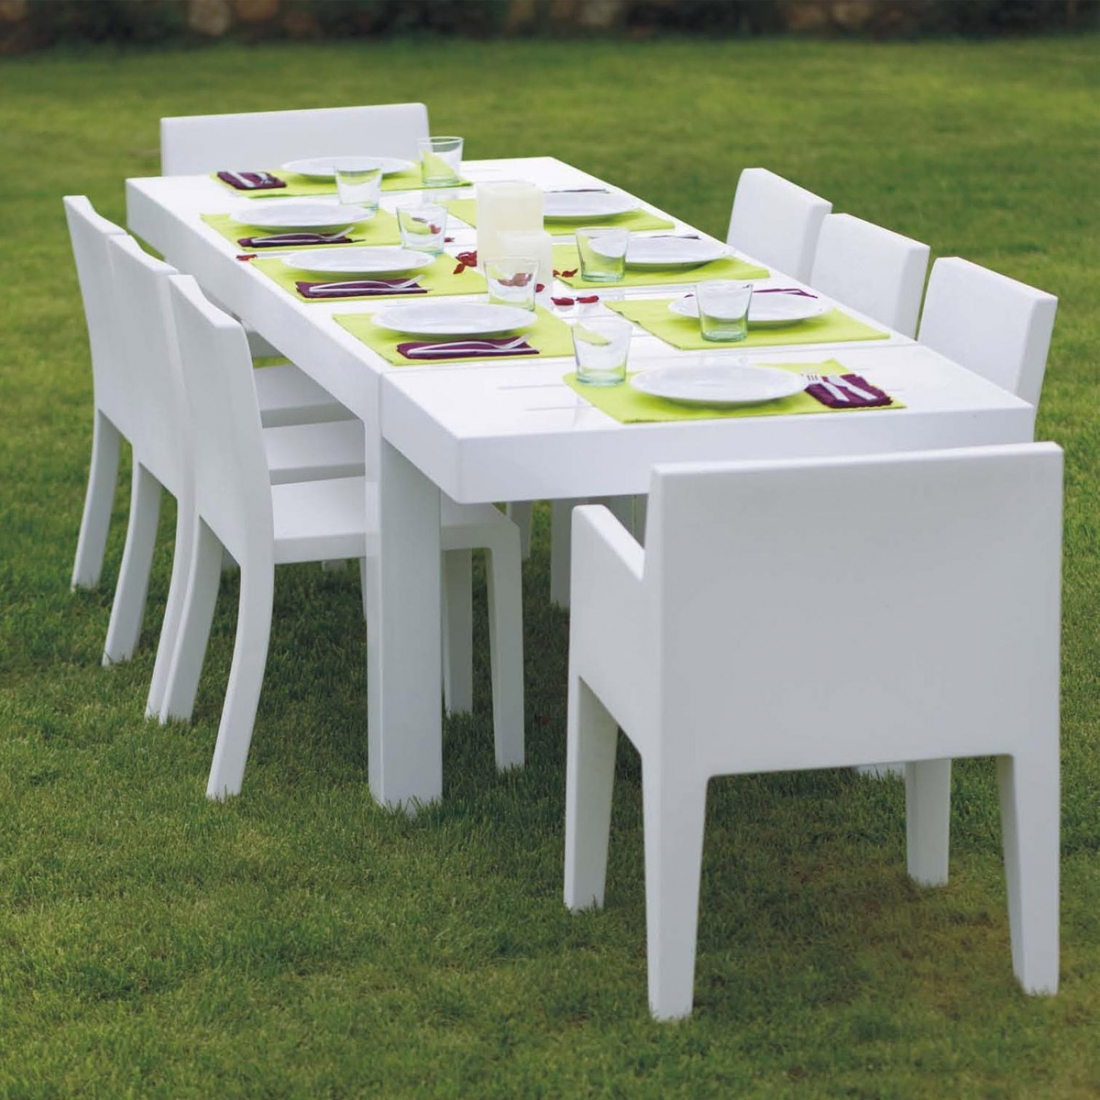 Table de jardin design 10 personnes jut par vondom for Design jardin exterieur